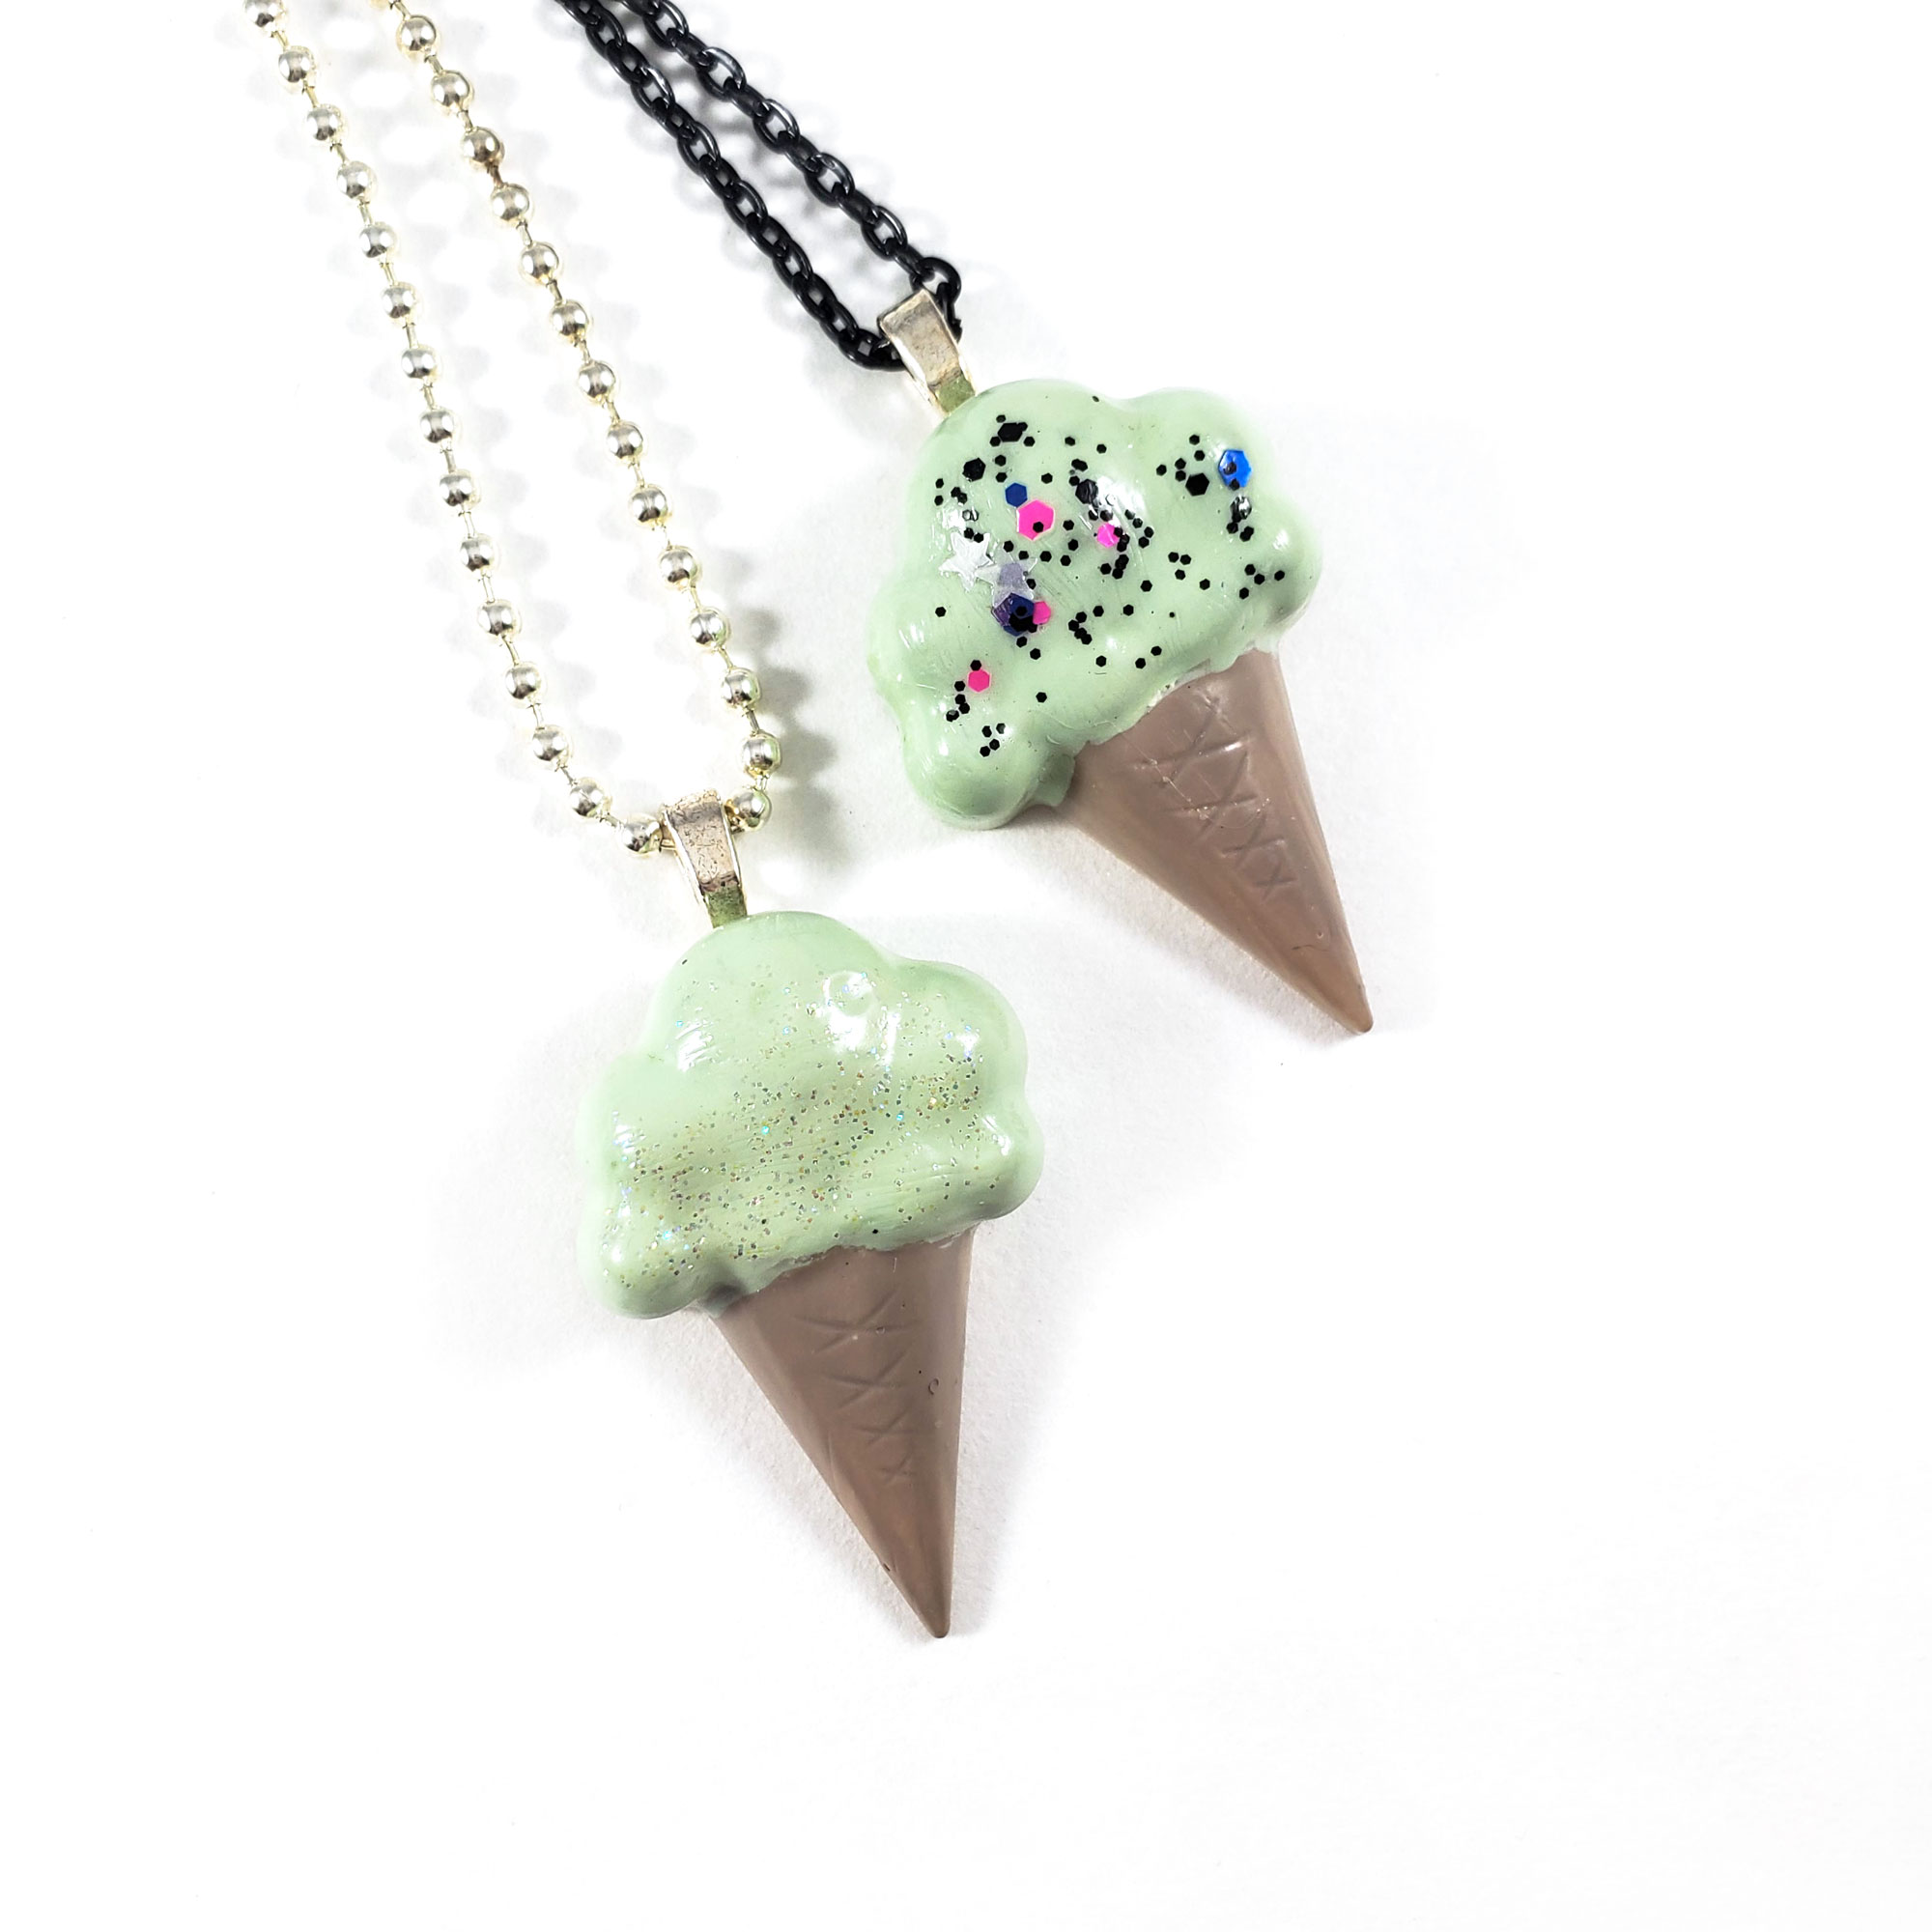 NE115ICEC_MINT_SweetToothIceCreamNecklaceInMintByWildeDesigns_02